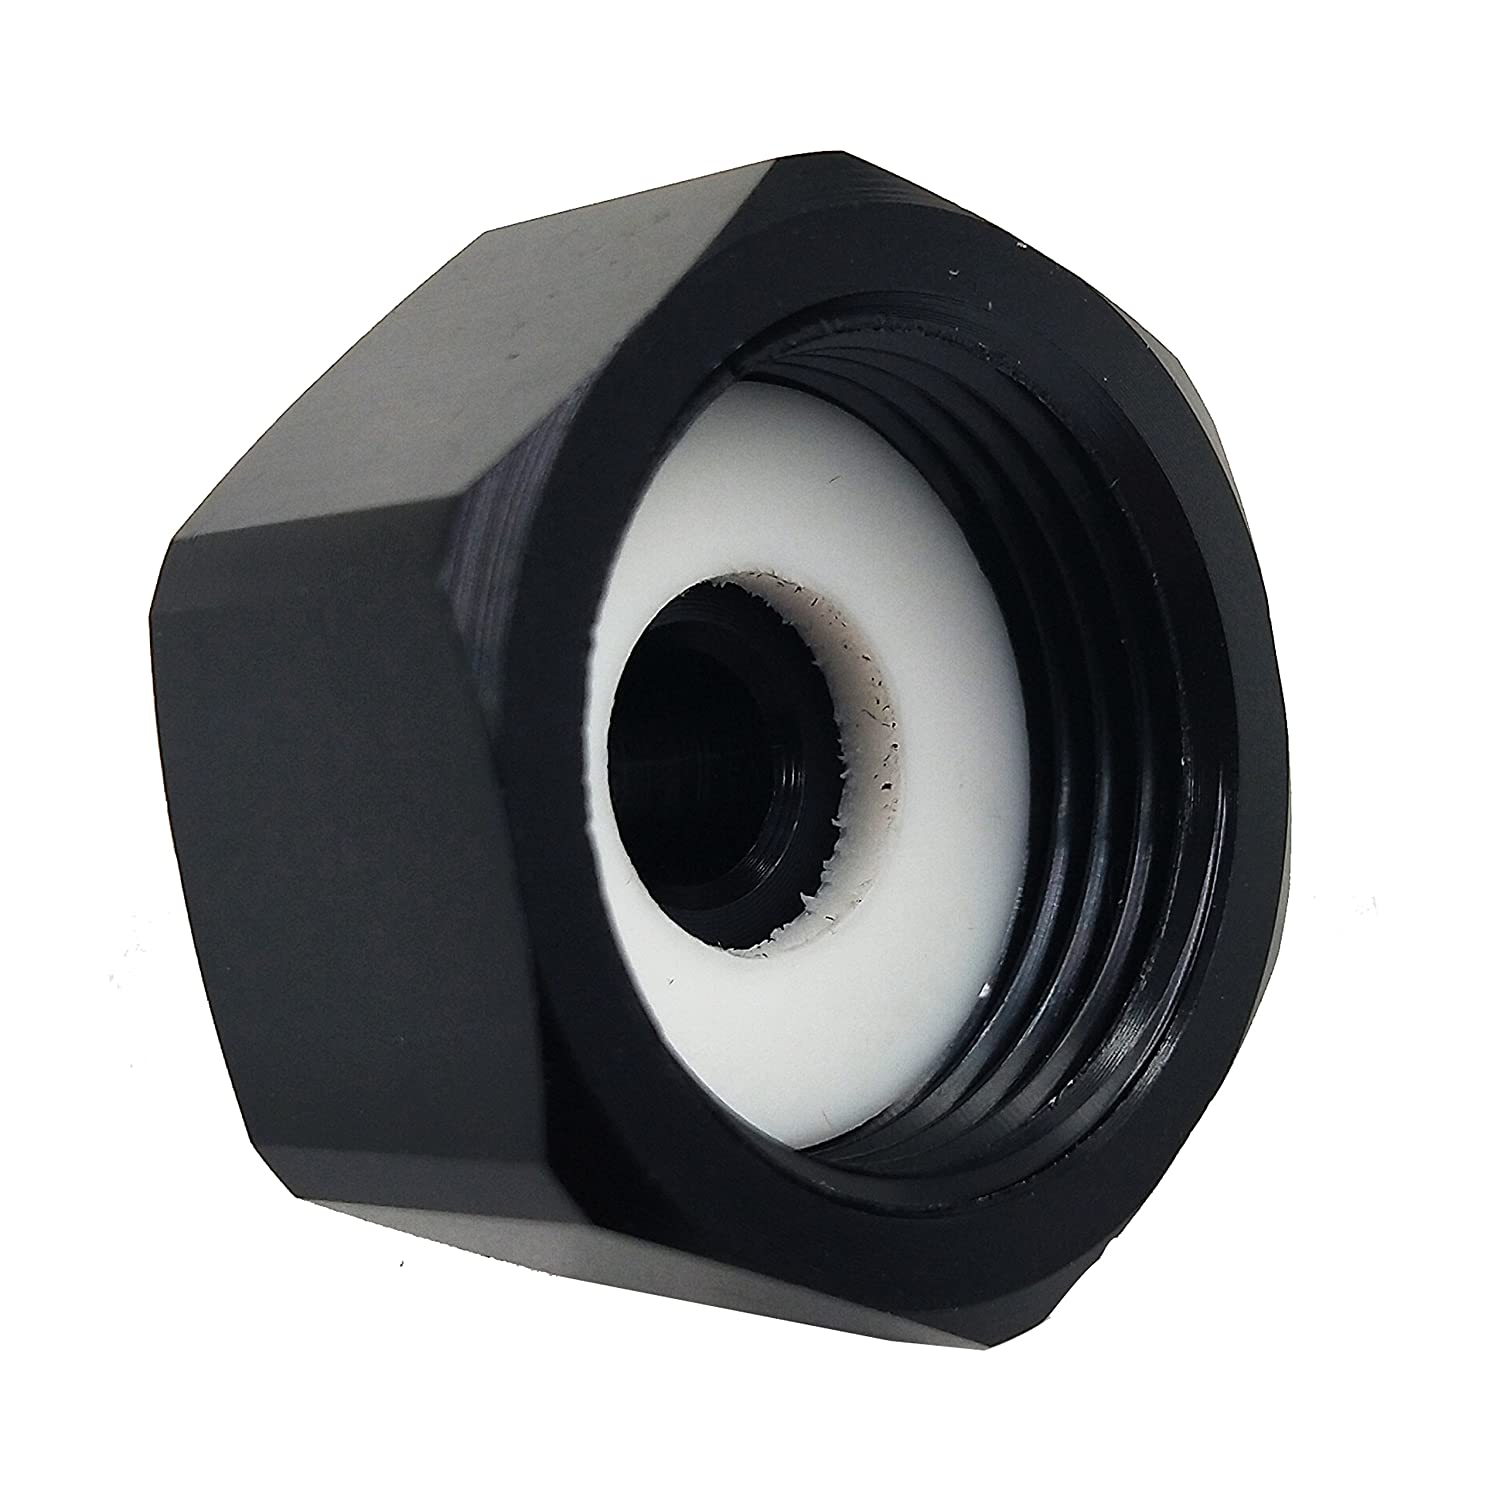 Dracary Black, 4AN Nitrous Bottle Nut Adapter With Washer